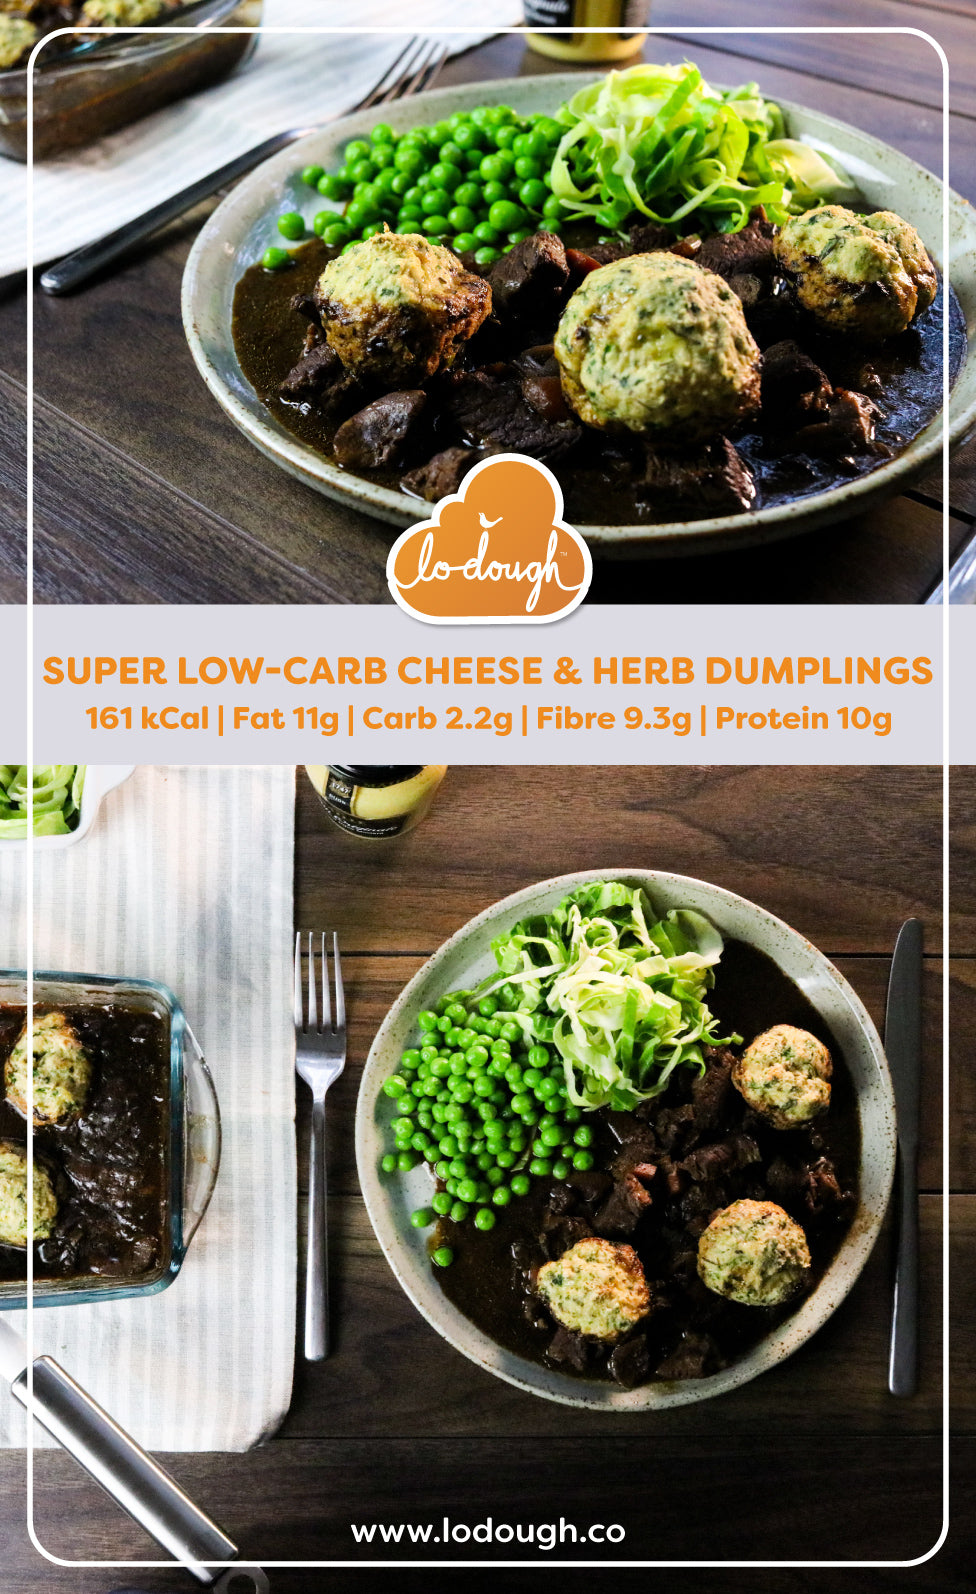 Low Carb Cheese and Herb Dumplings